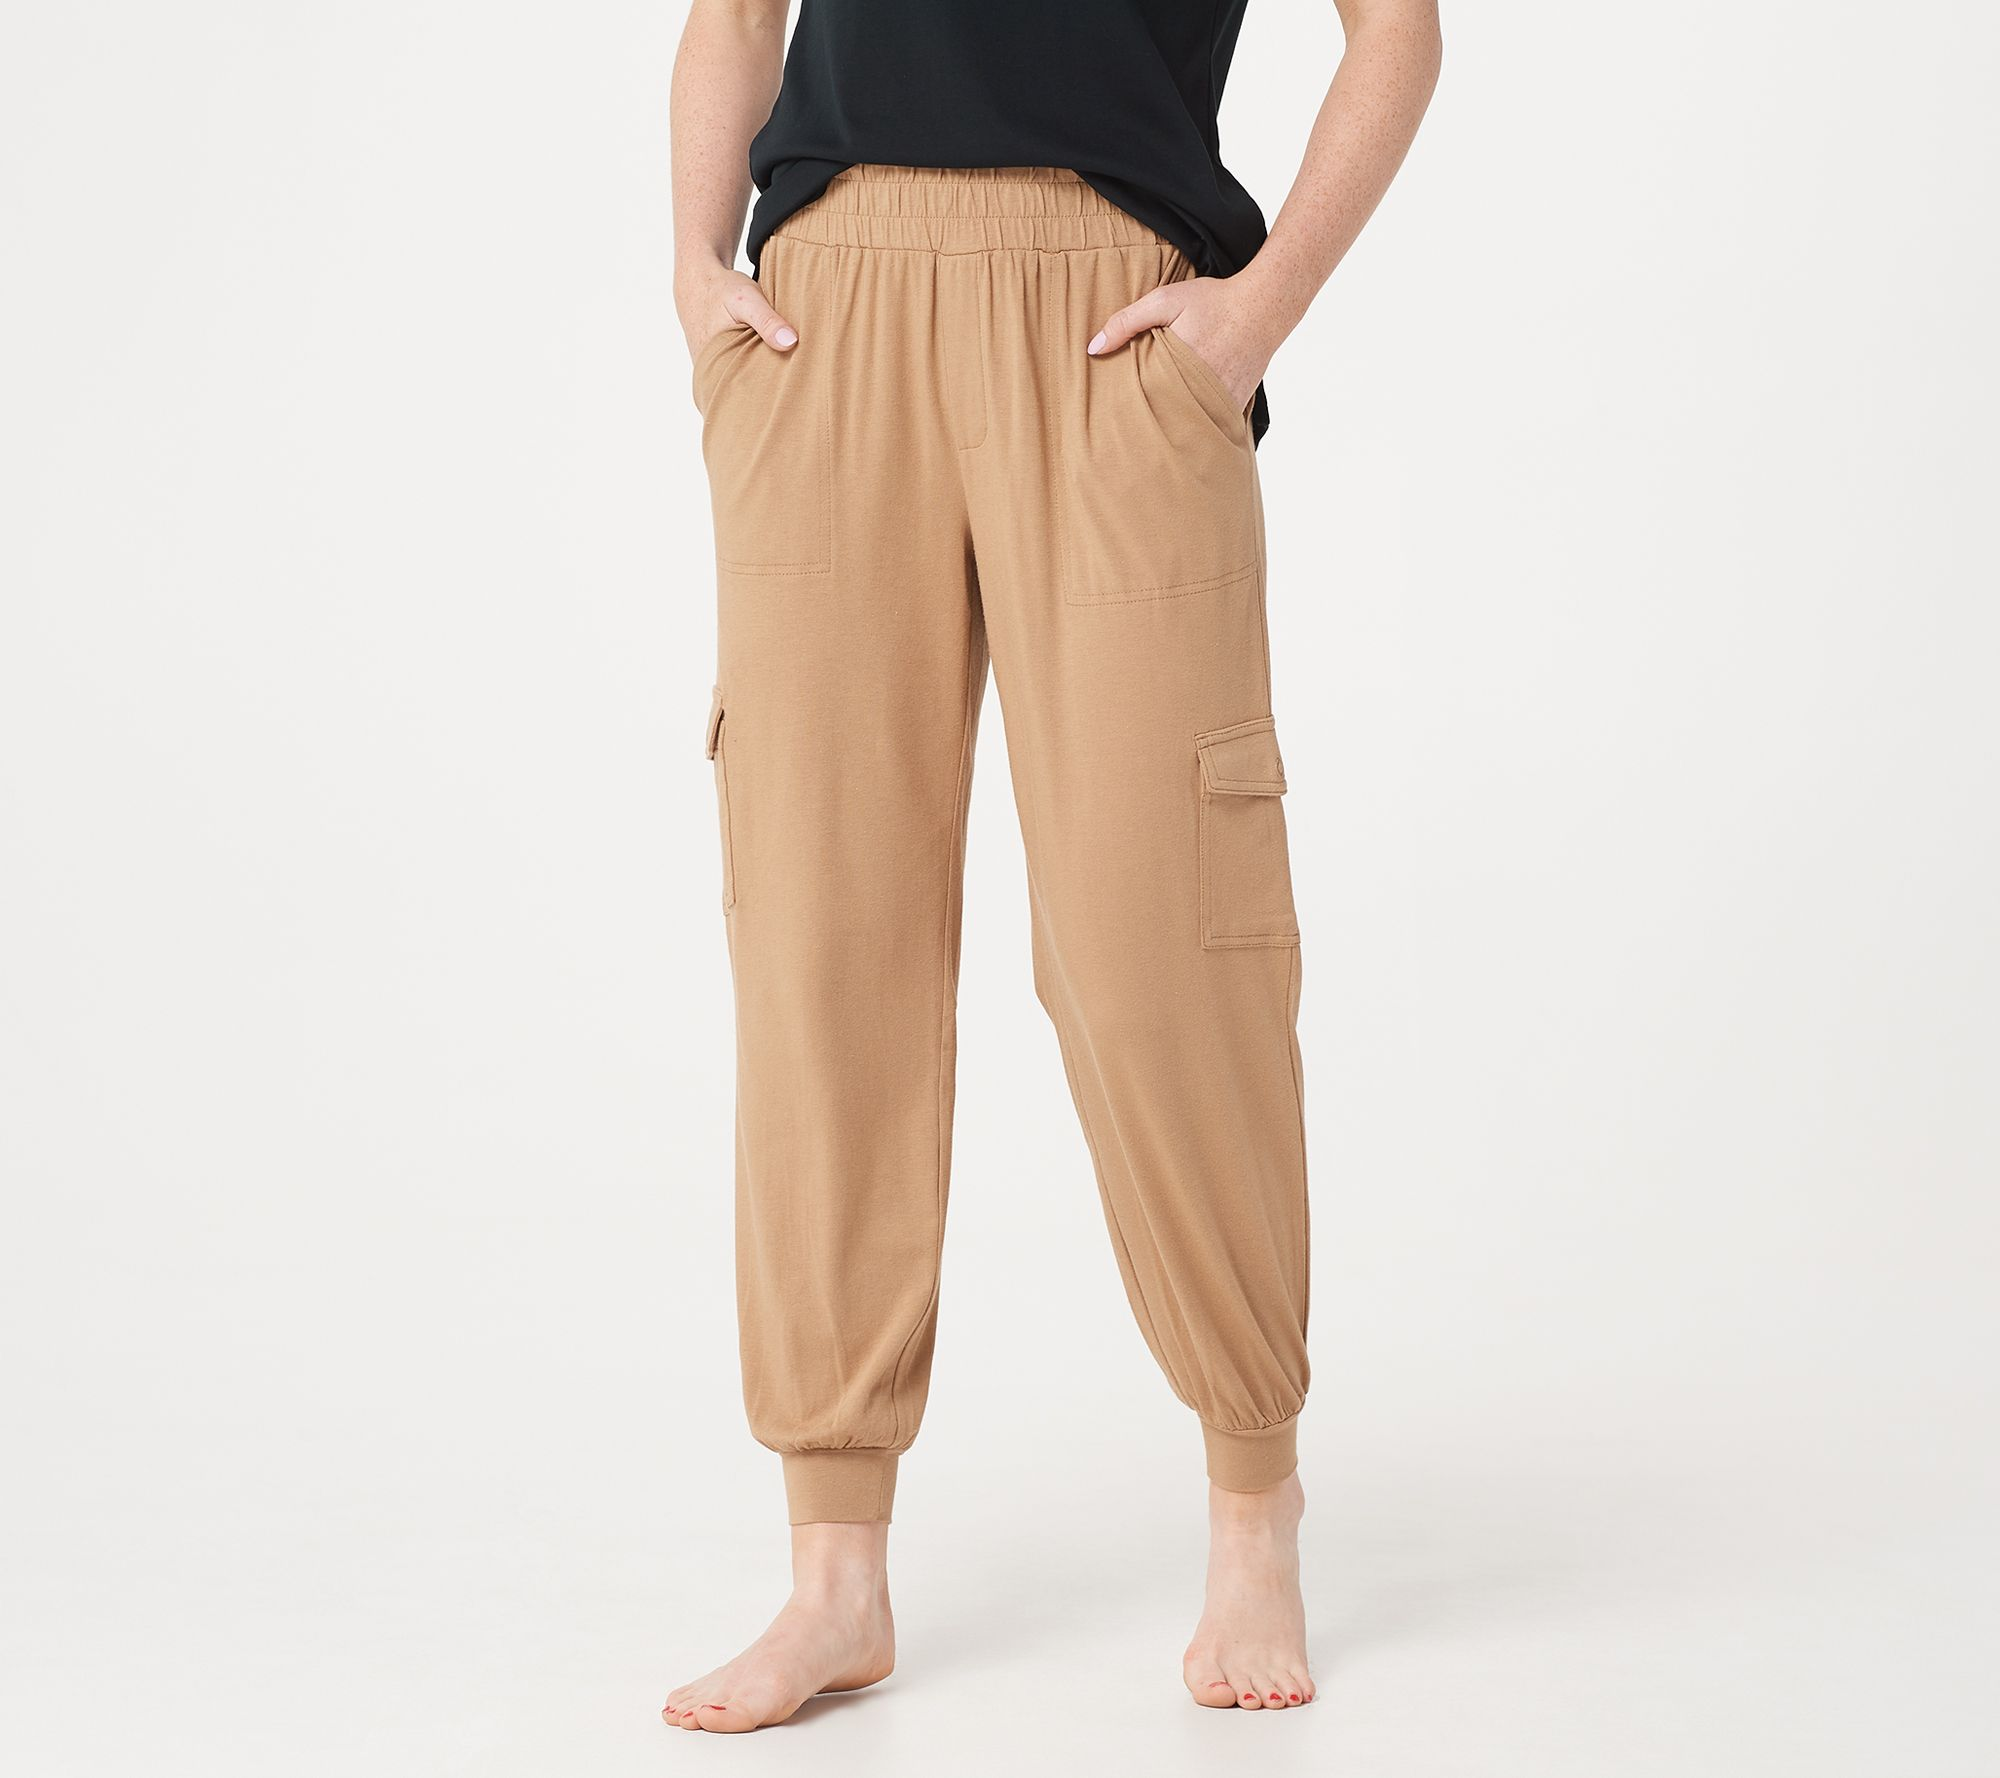 adf7b937fa0b5 AnyBody Loungewear Cozy Knit Cargo Jogger Pants with Pockets - Page 1 —  QVC.com